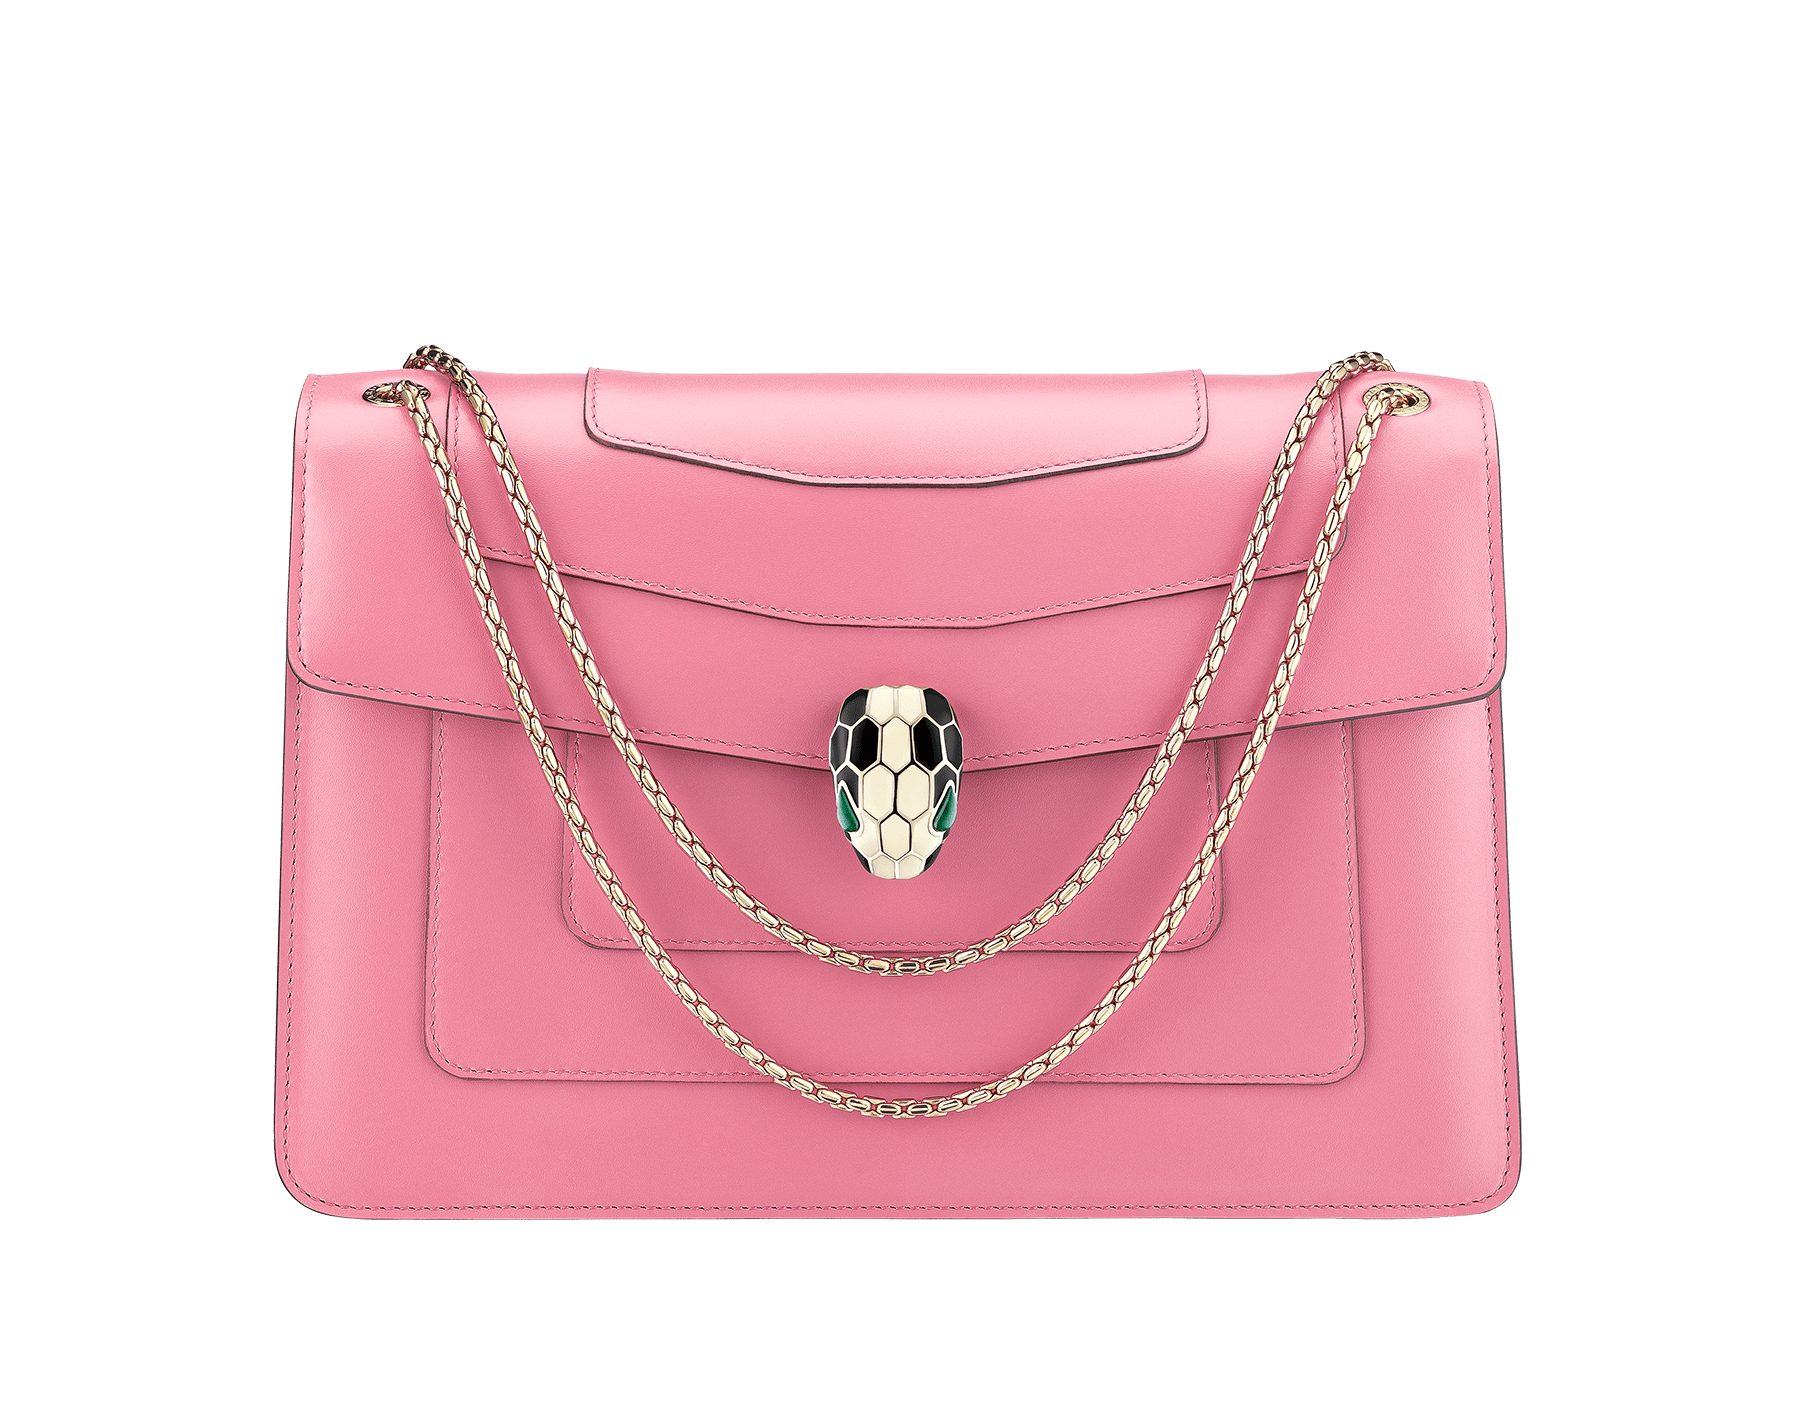 """""""Serpenti Forever"""" shoulder bag in candy quartz calf leather. Iconic snakehead closure in light gold plated brass enriched with black and white enamel and green malachite eyes 287036 image 1"""